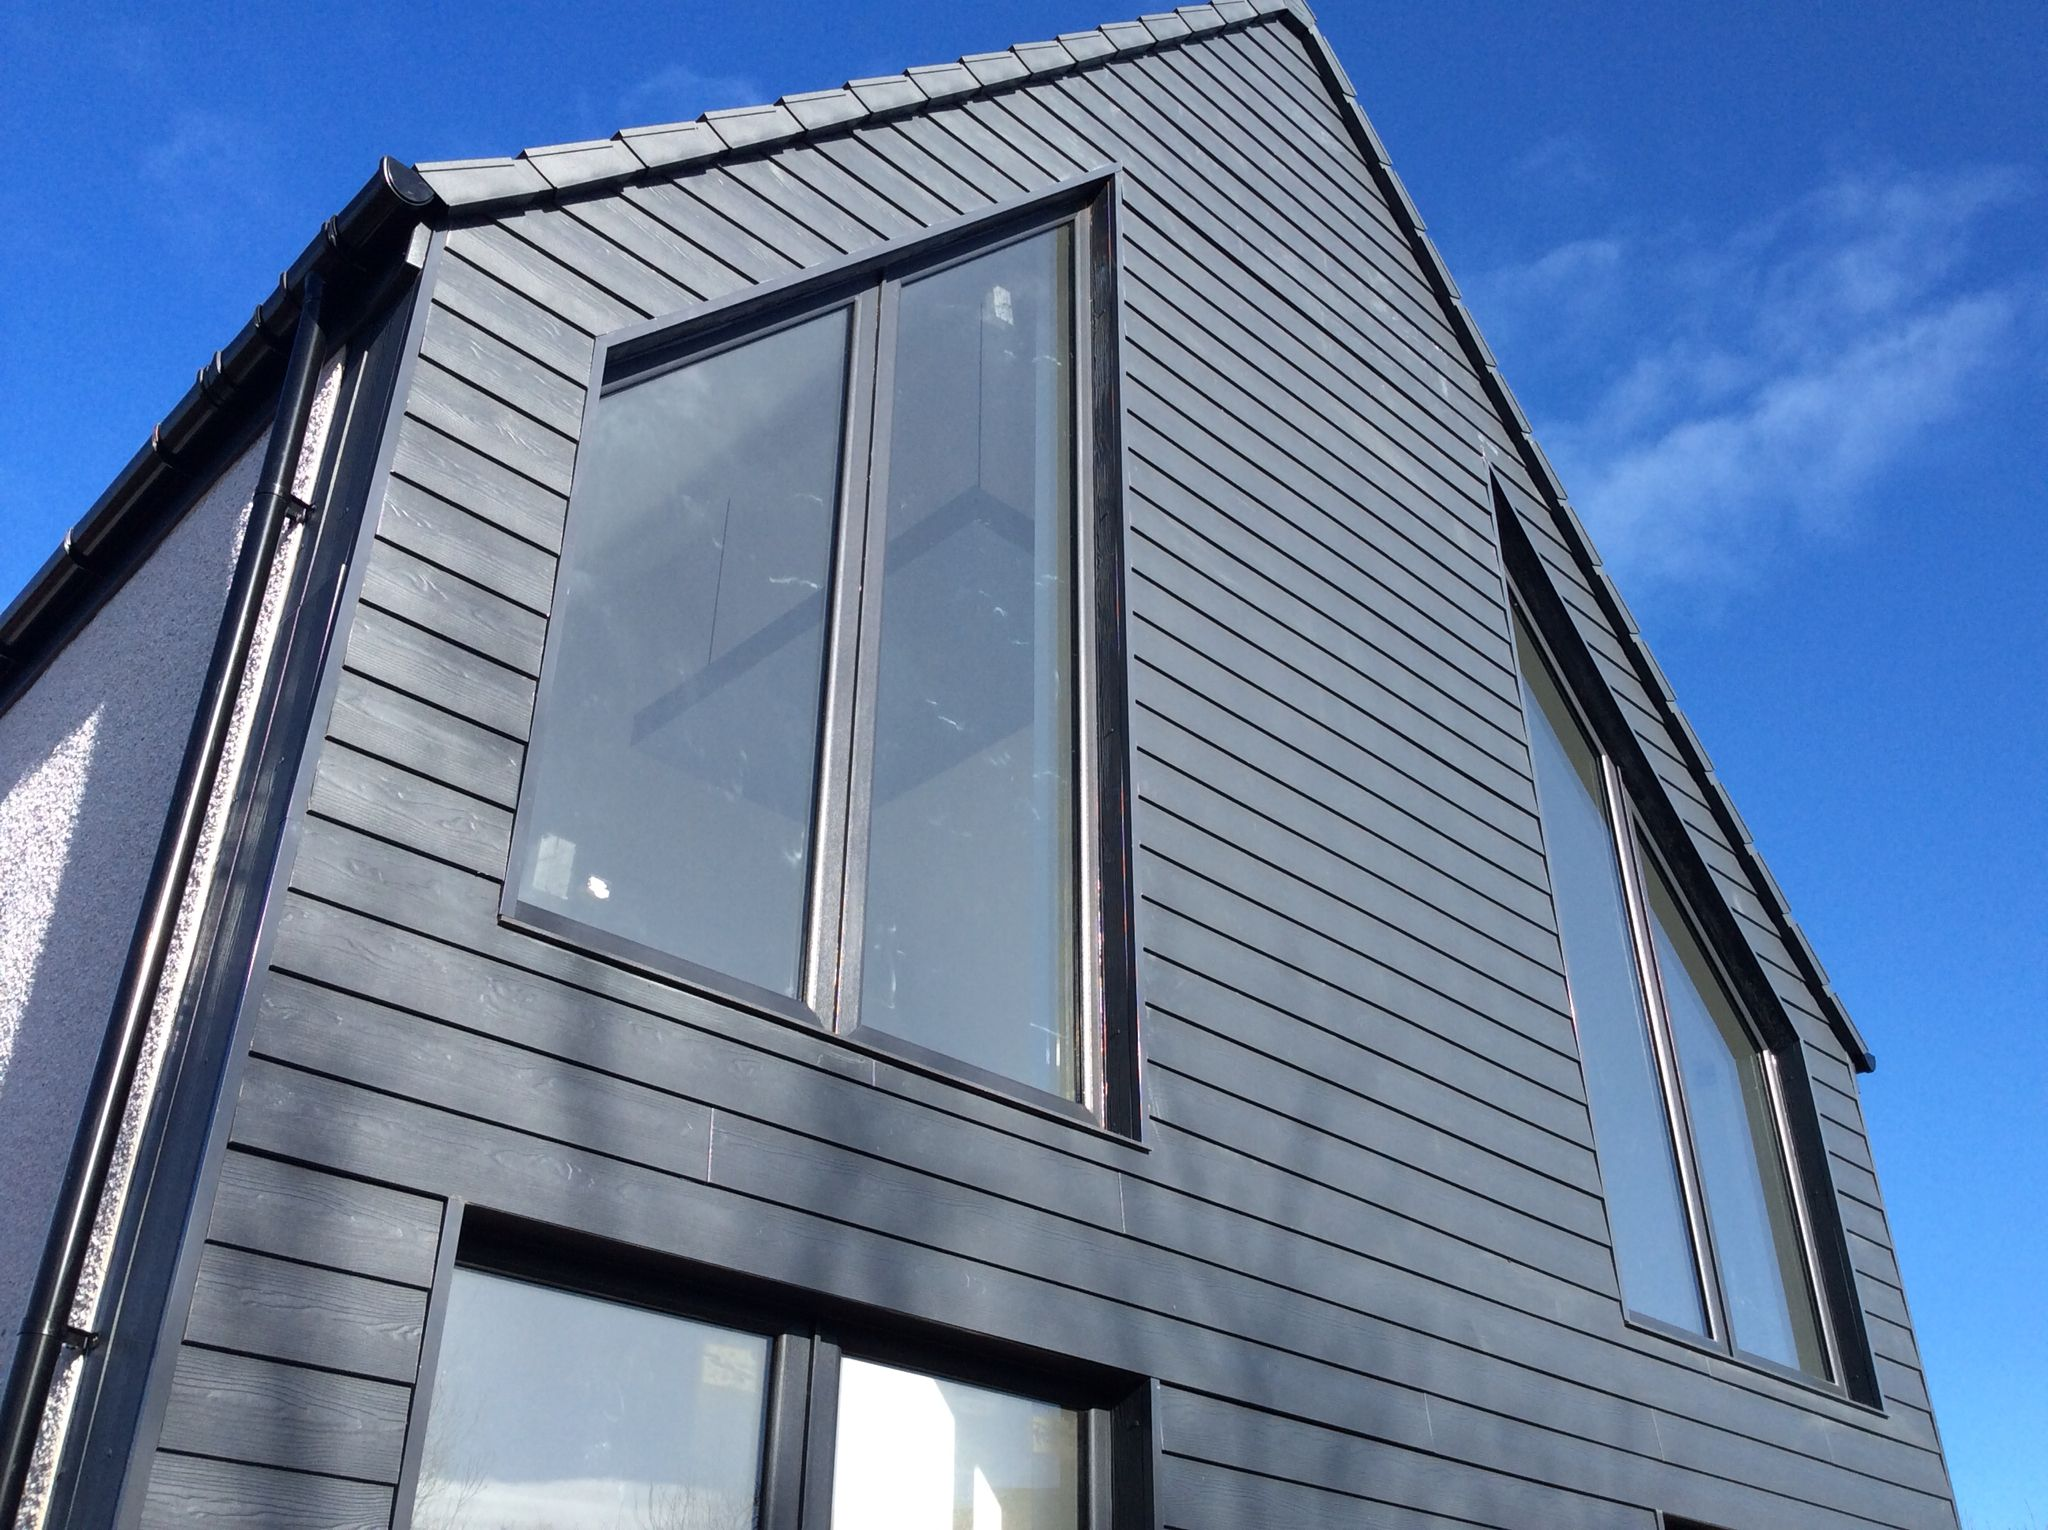 new installation of a cedral weatherboard in north scotland bardage mix pinterest arriere. Black Bedroom Furniture Sets. Home Design Ideas